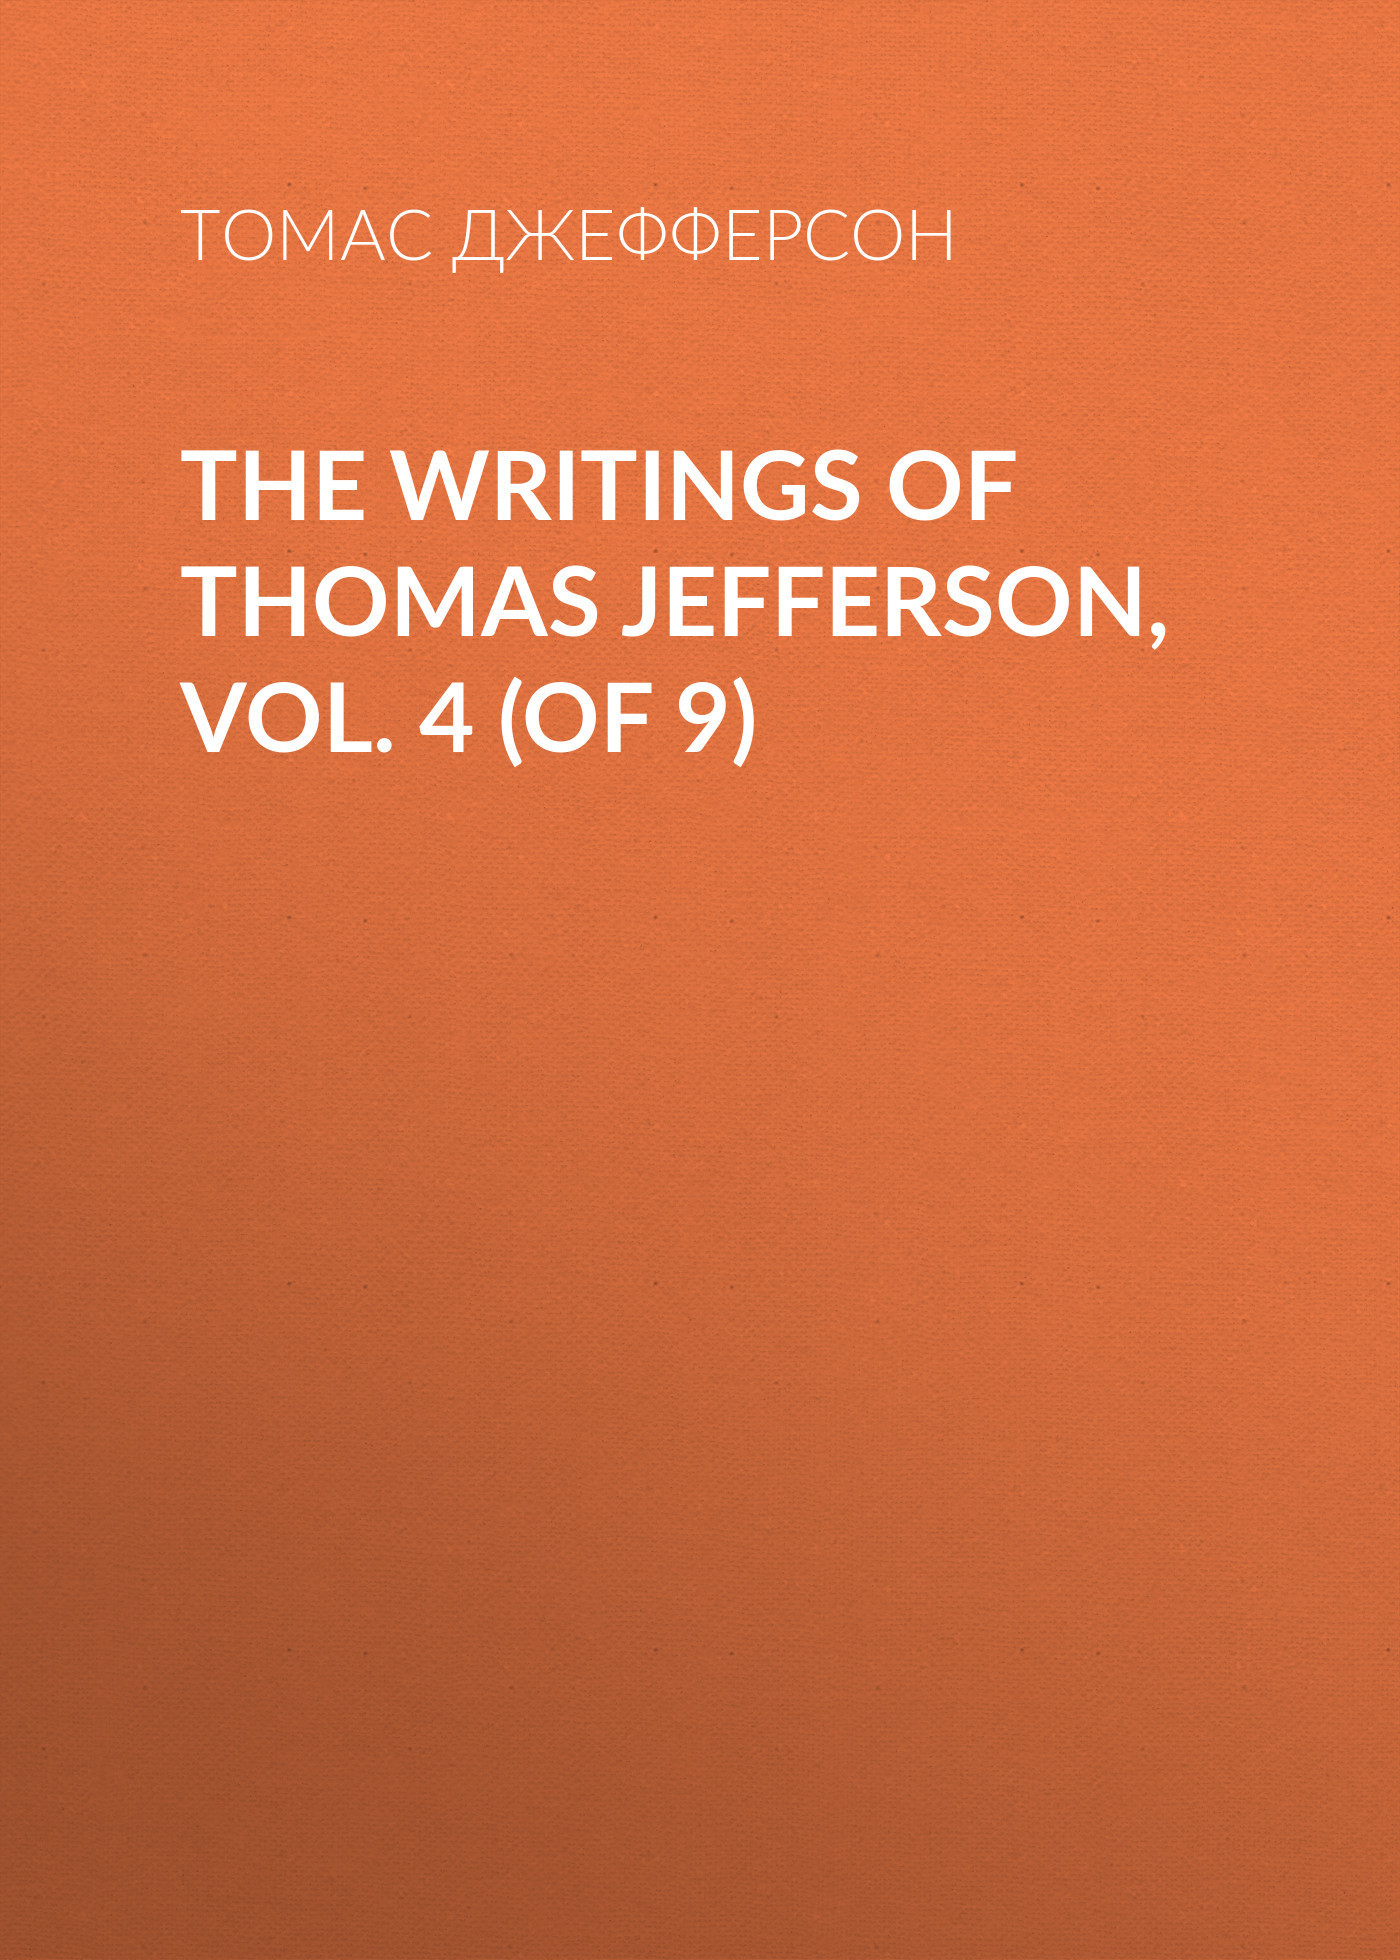 Томас Джефферсон The Writings of Thomas Jefferson, Vol. 4 (of 9) jack of fables vol 9 the end